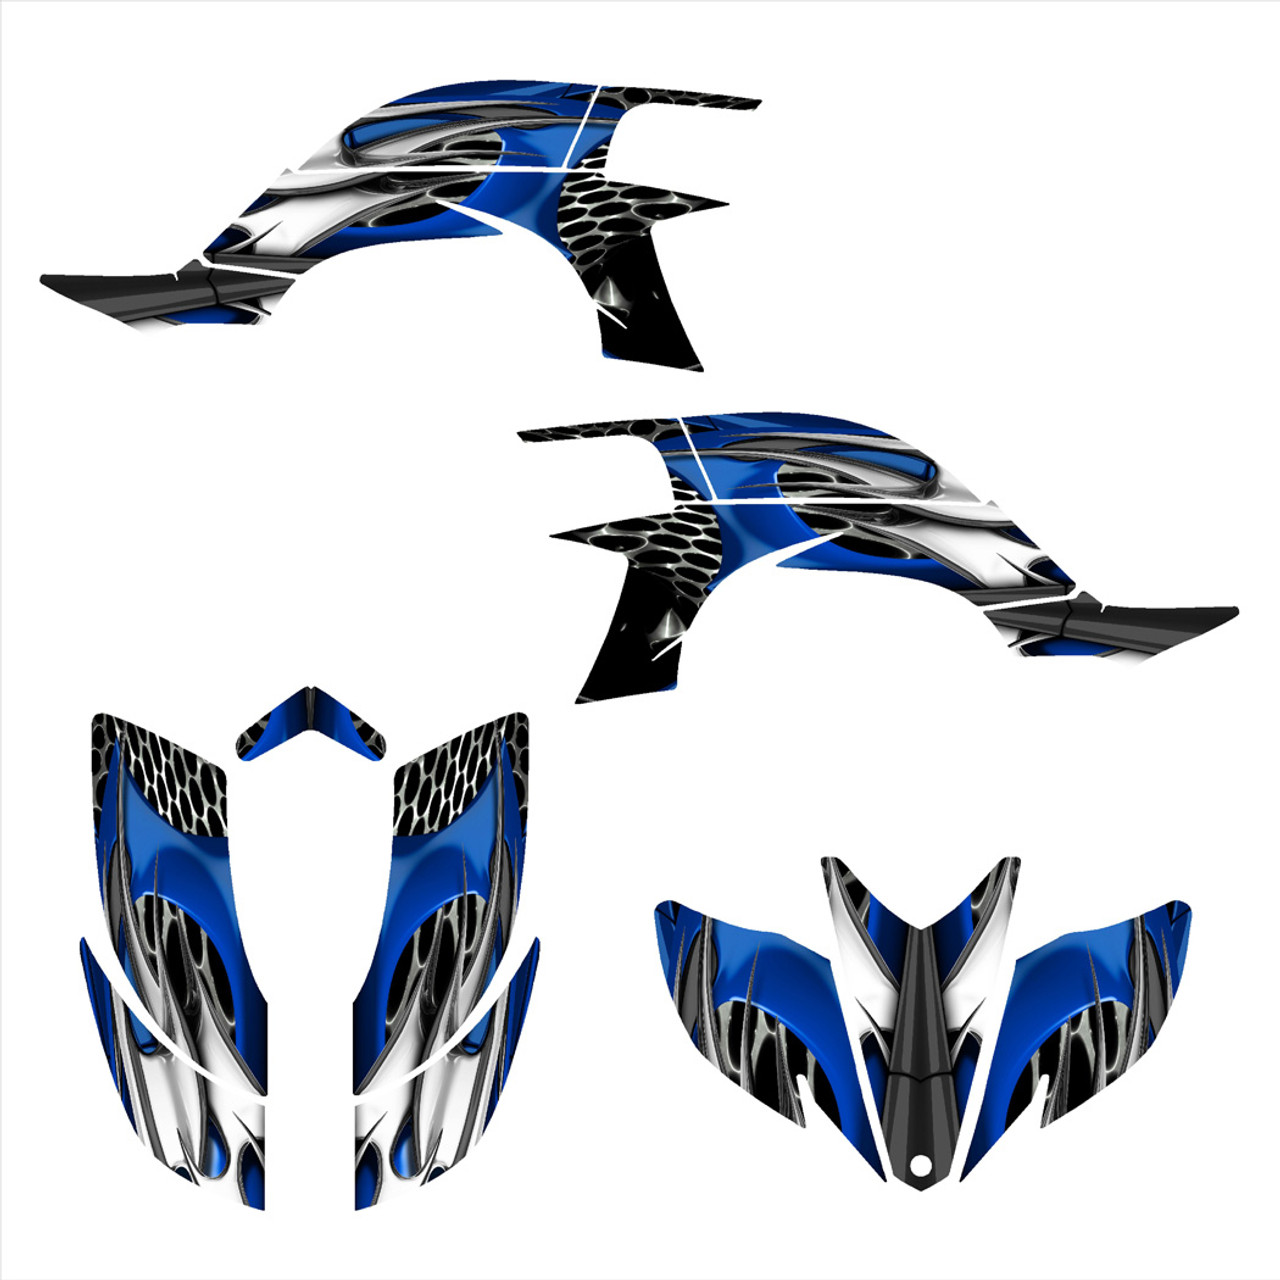 yfz450 graphics kit by All Motor Graphics